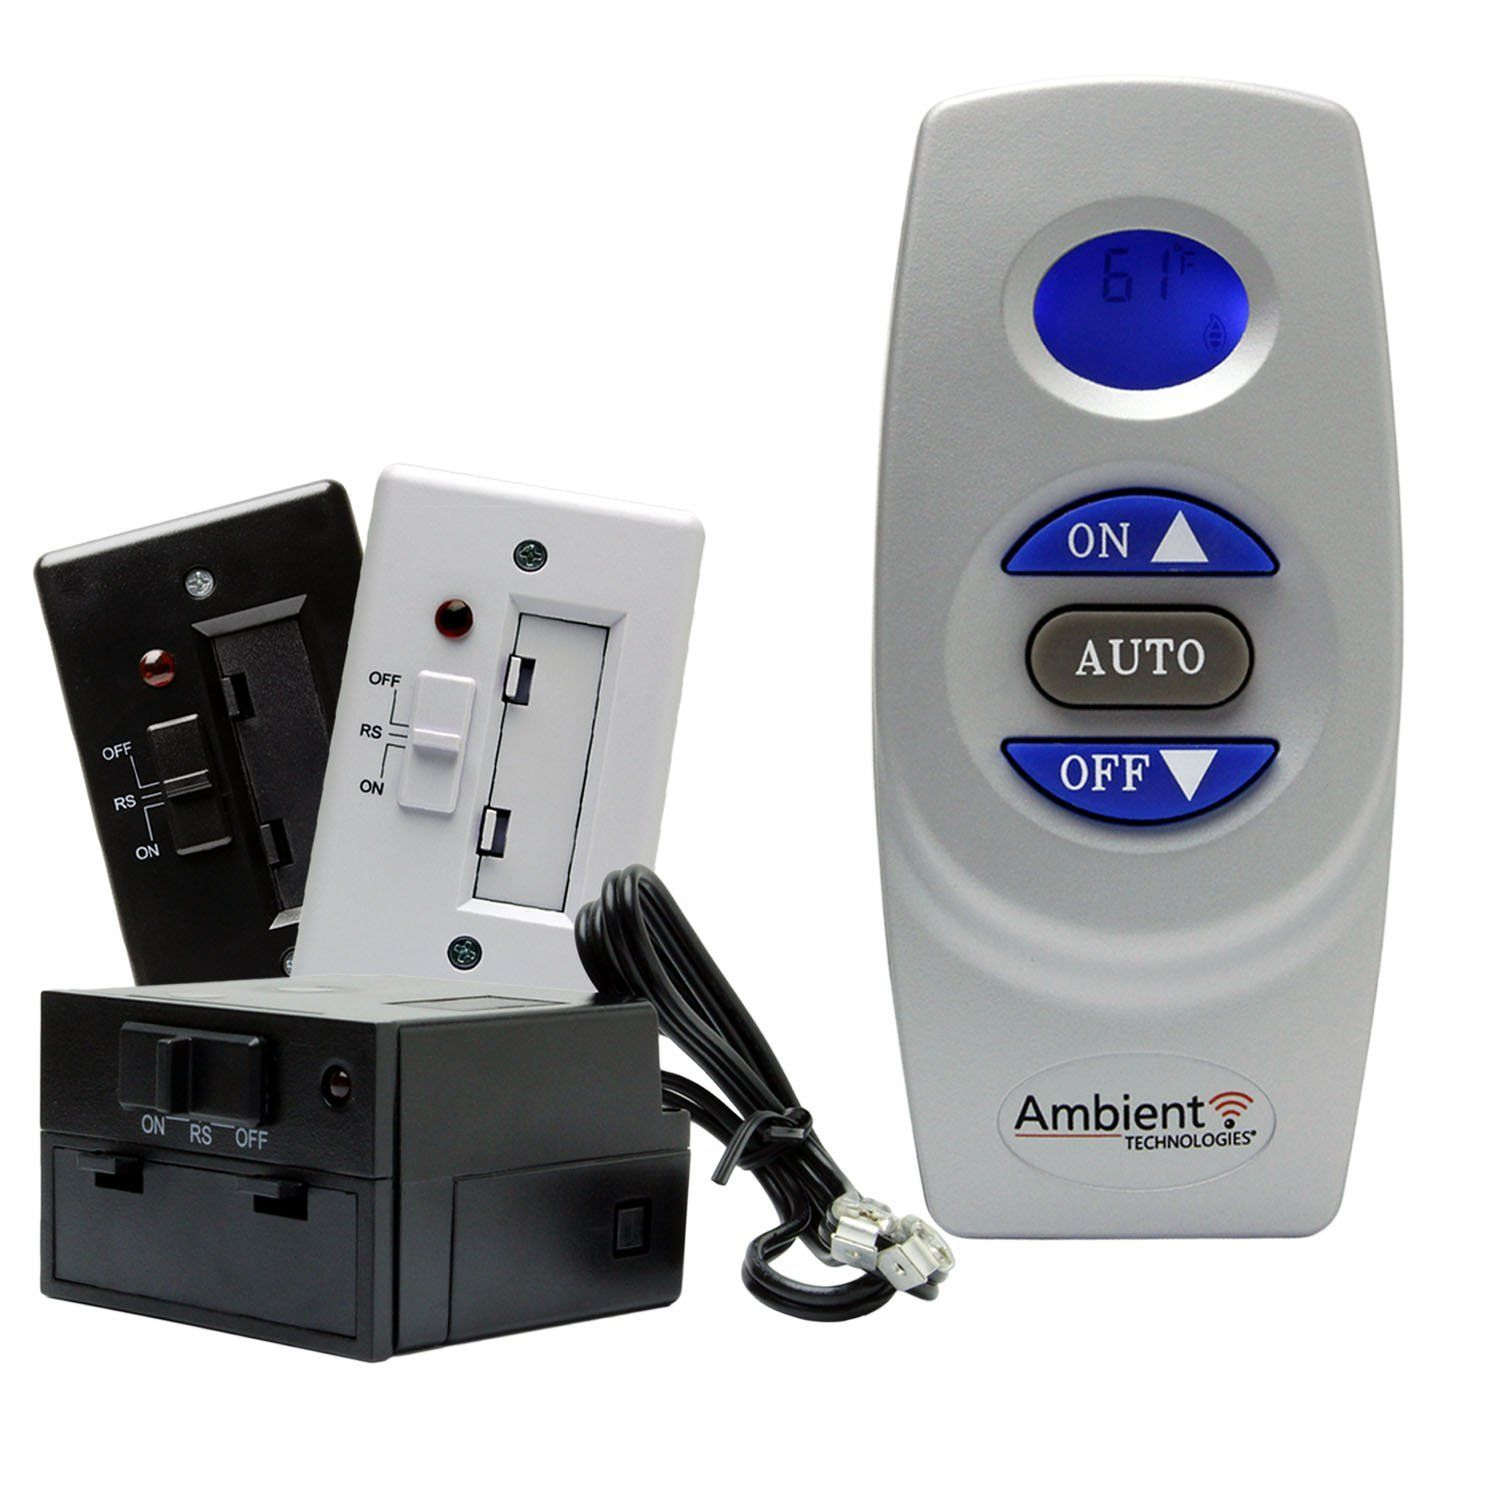 ambient rcst on off thermostat fireplace remote control check